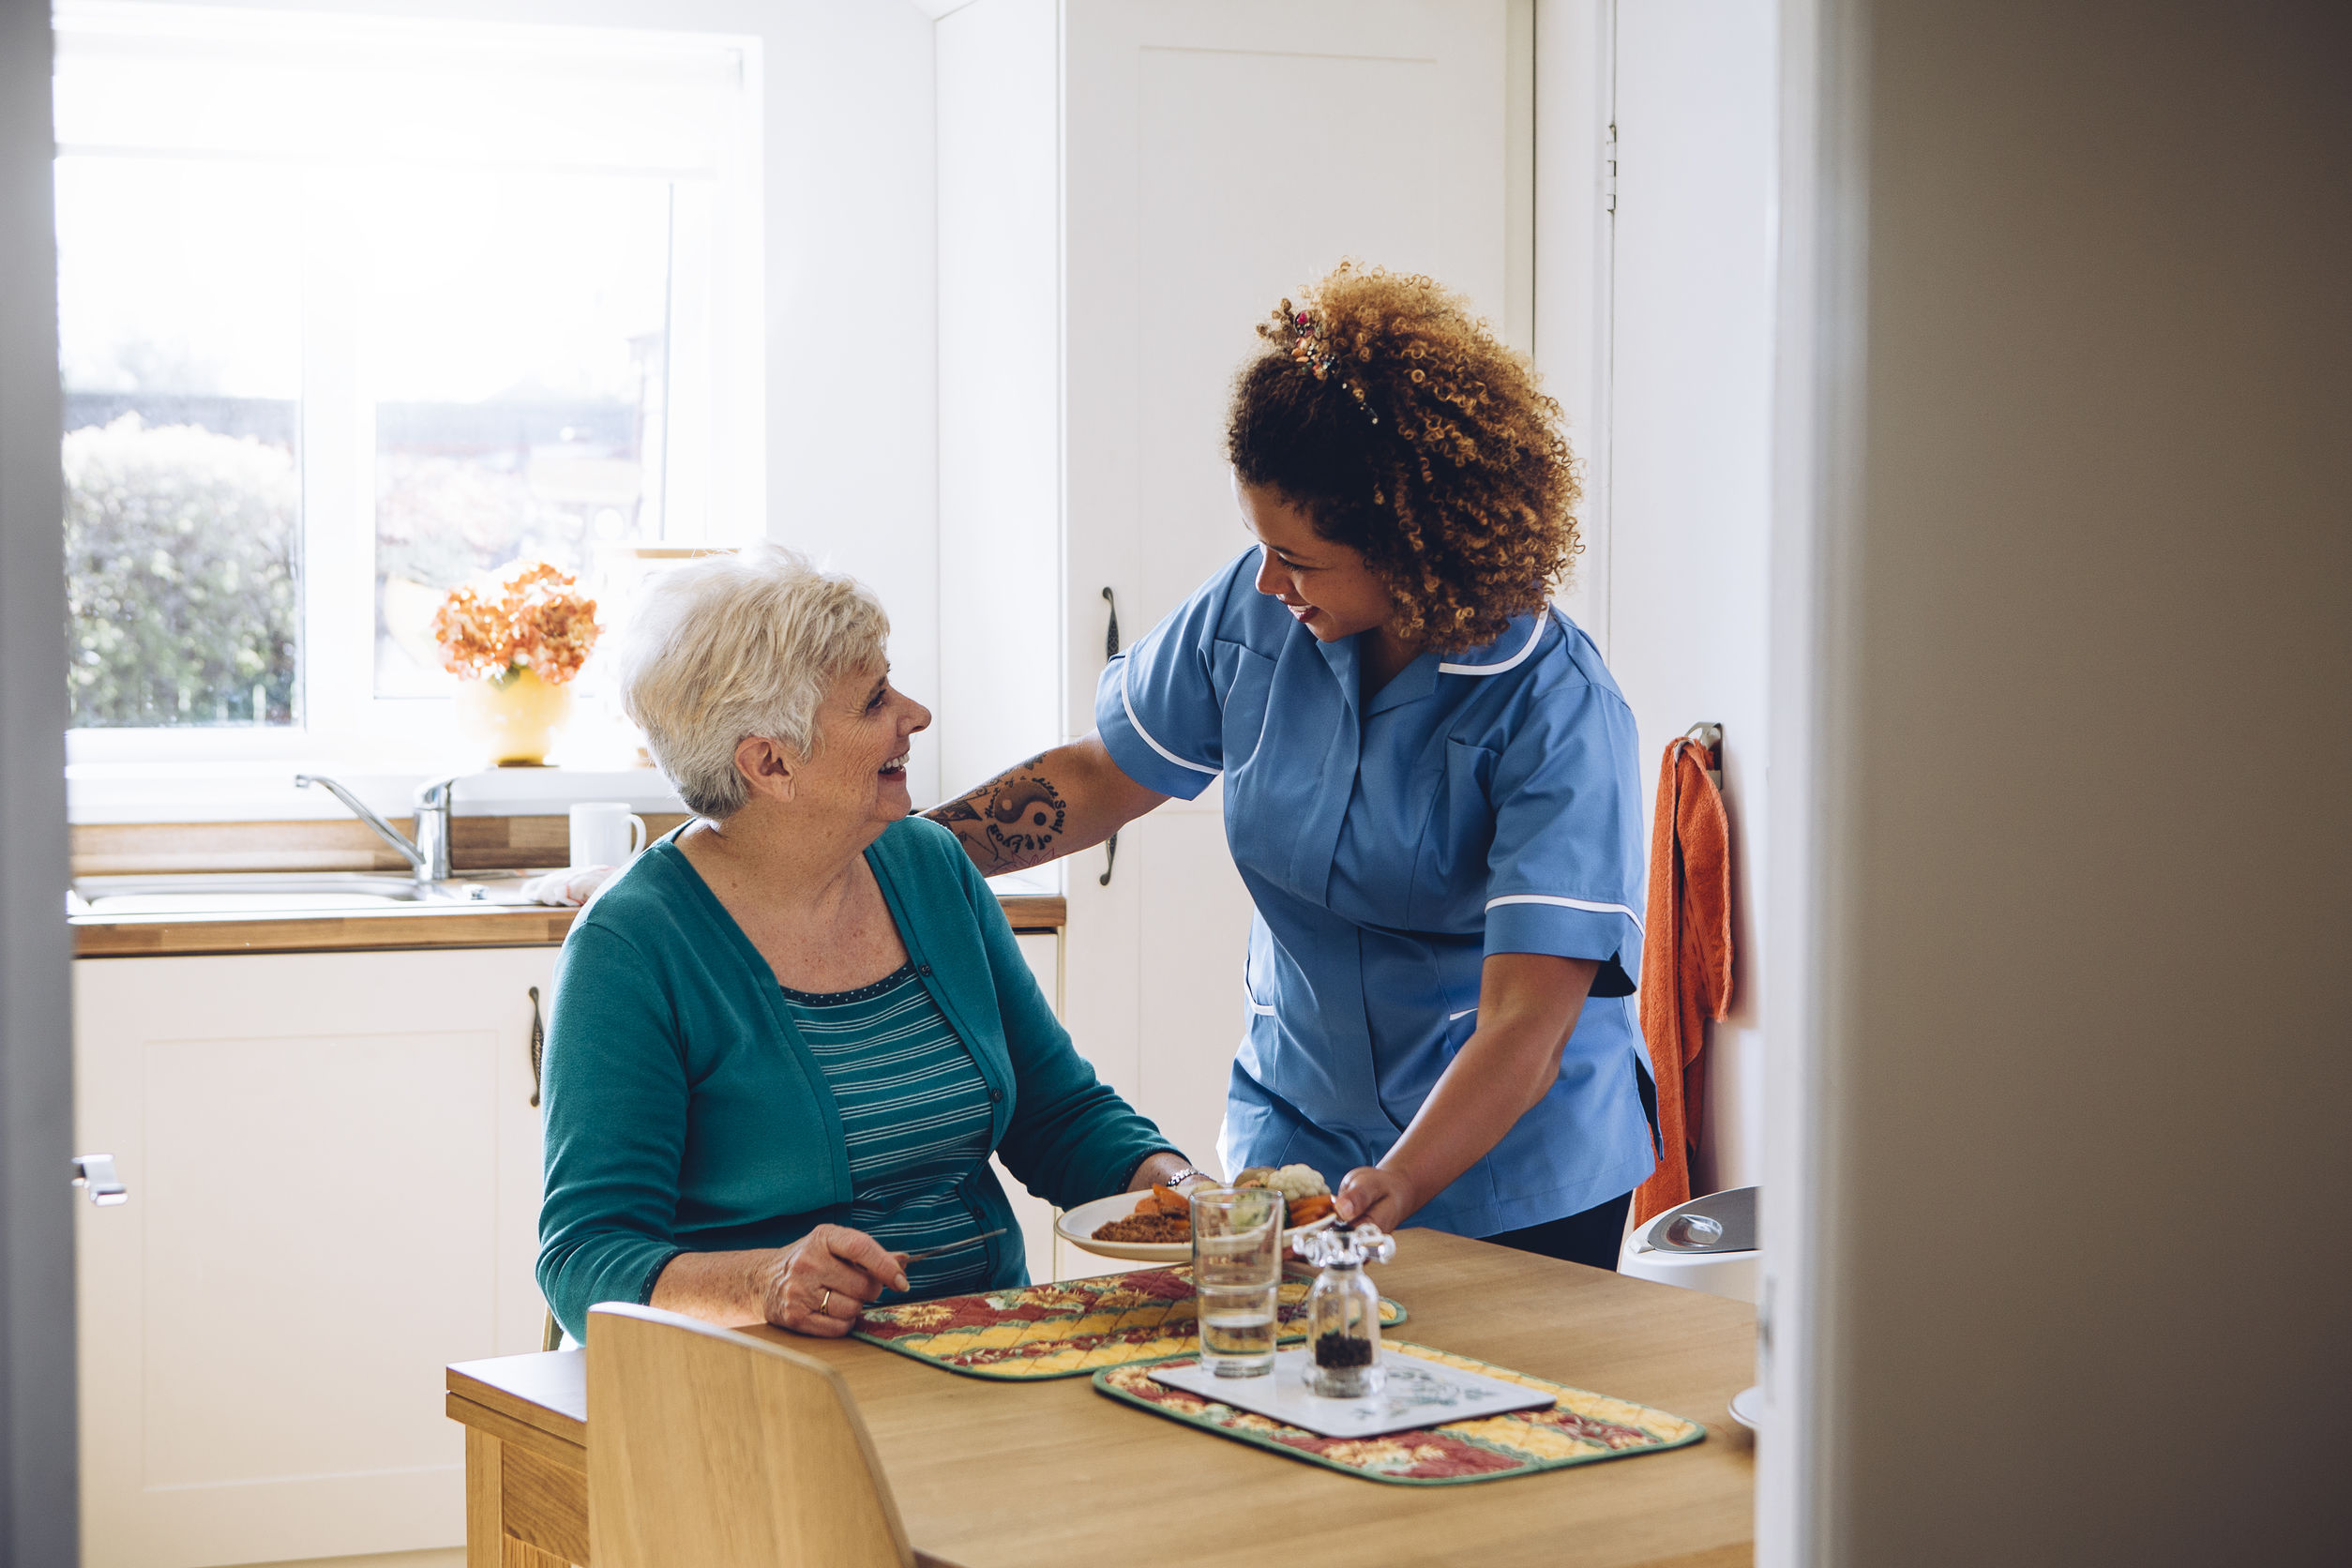 A care worker talks to an elderly woman in home care.